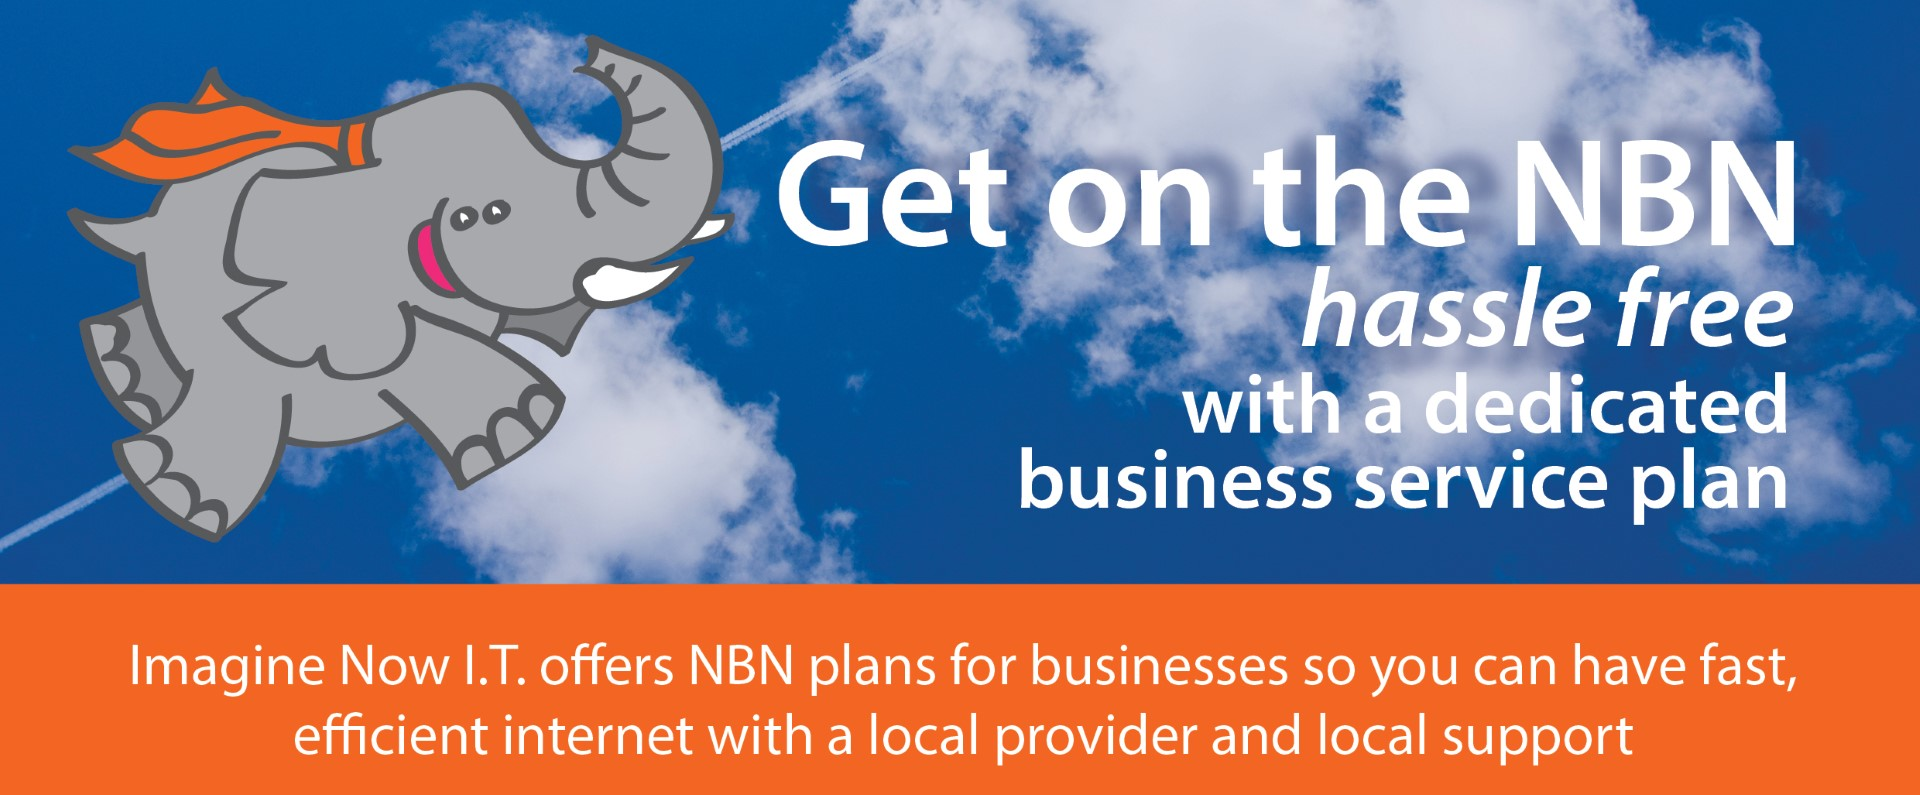 Get on the NBN